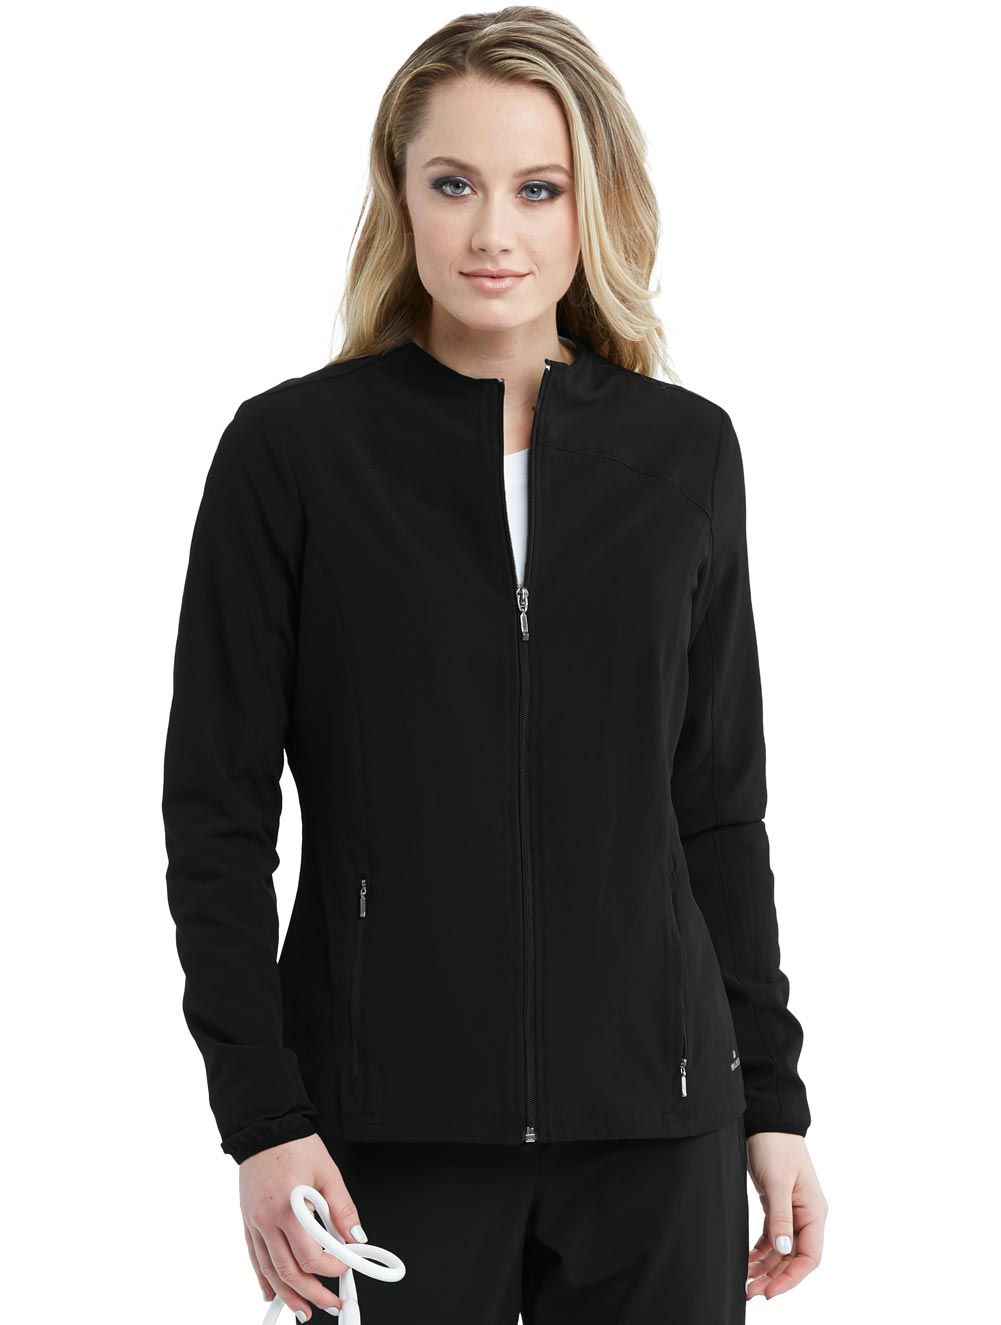 'Barco One' Women's 2 Pocket Zip Front Warmup Scrub Jacket